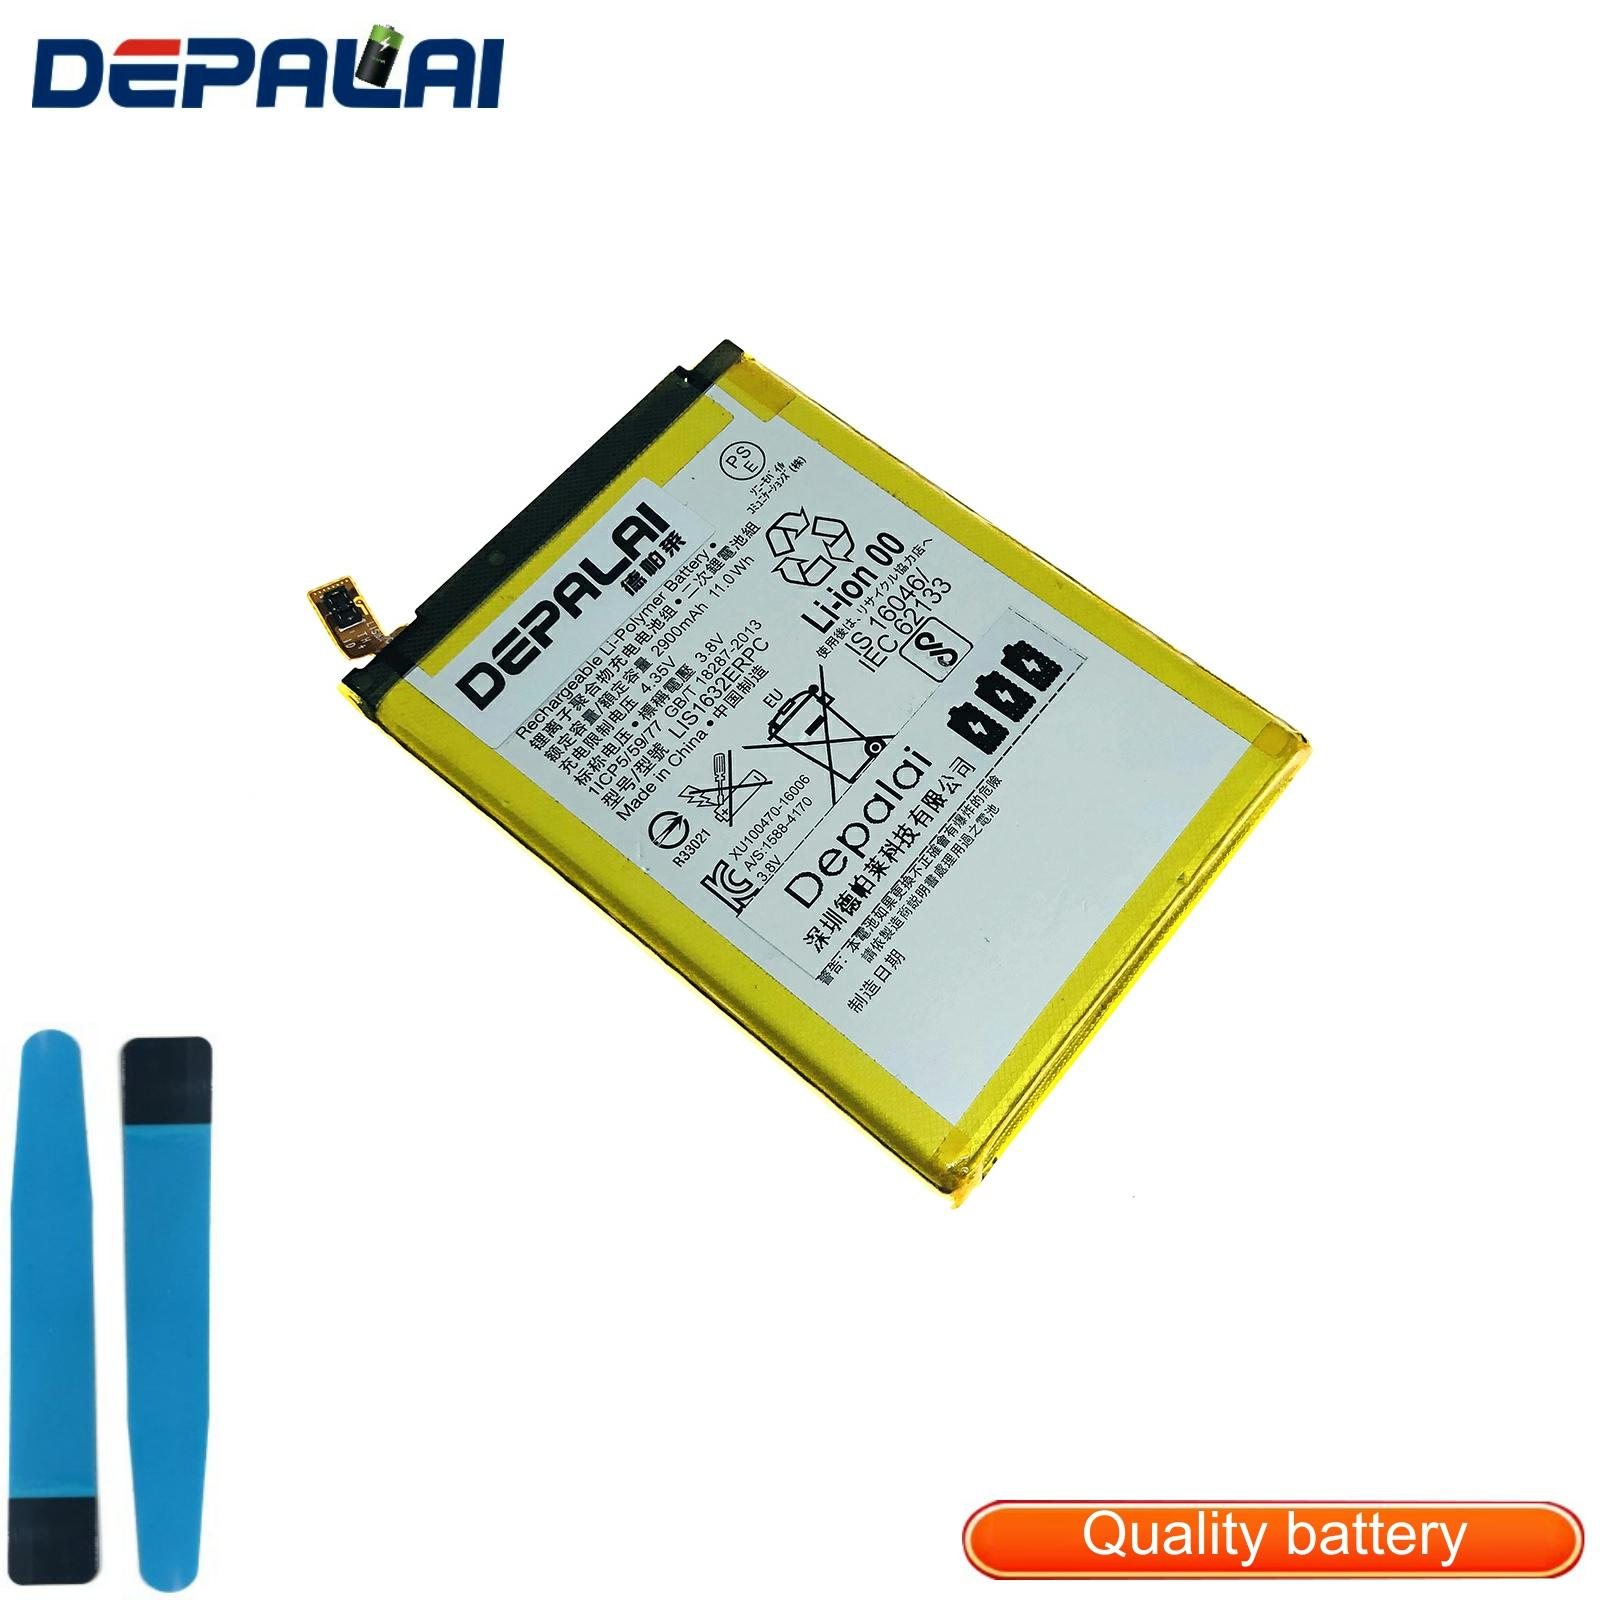 Good quality Replacement <font><b>Battery</b></font> For SONY <font><b>Xperia</b></font> <font><b>XZ</b></font> F8331 F8332 DUAL LIS1632ERPC <font><b>Battery</b></font> 2900mAh image